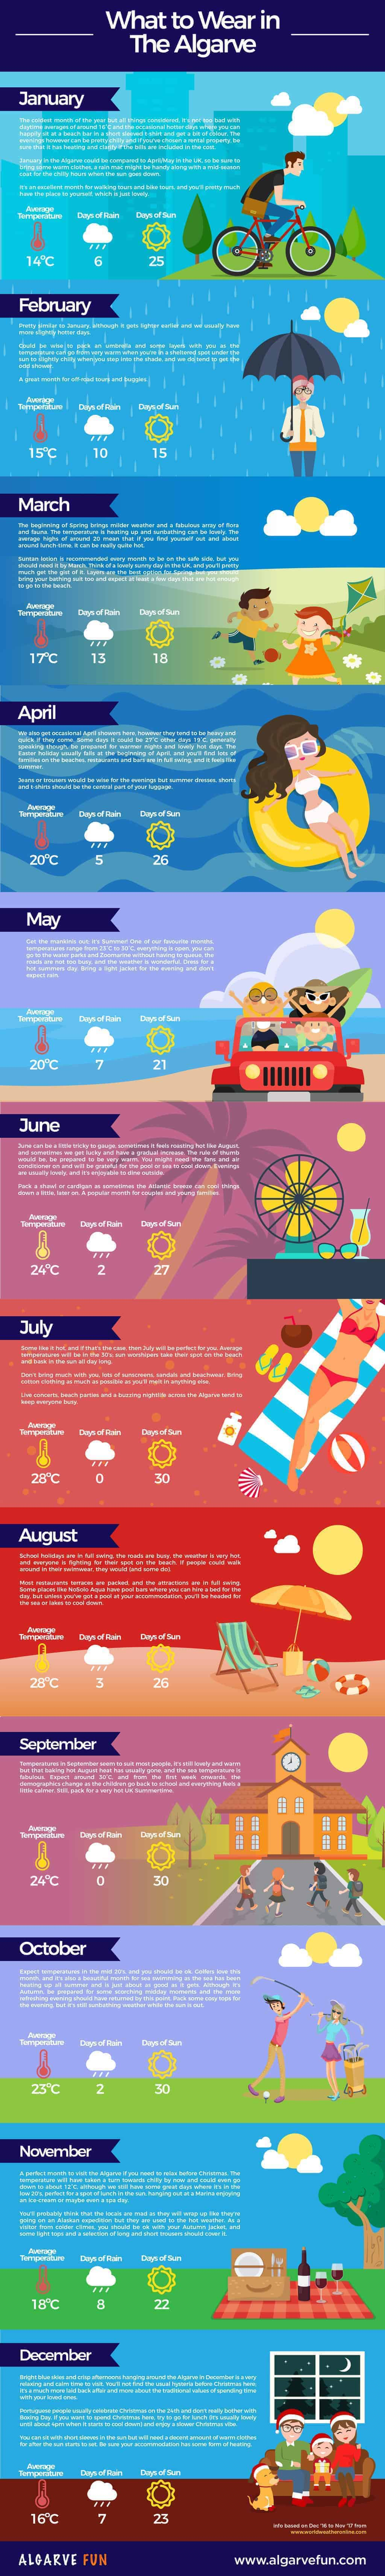 Infographic of the Algarve weather and what to wear